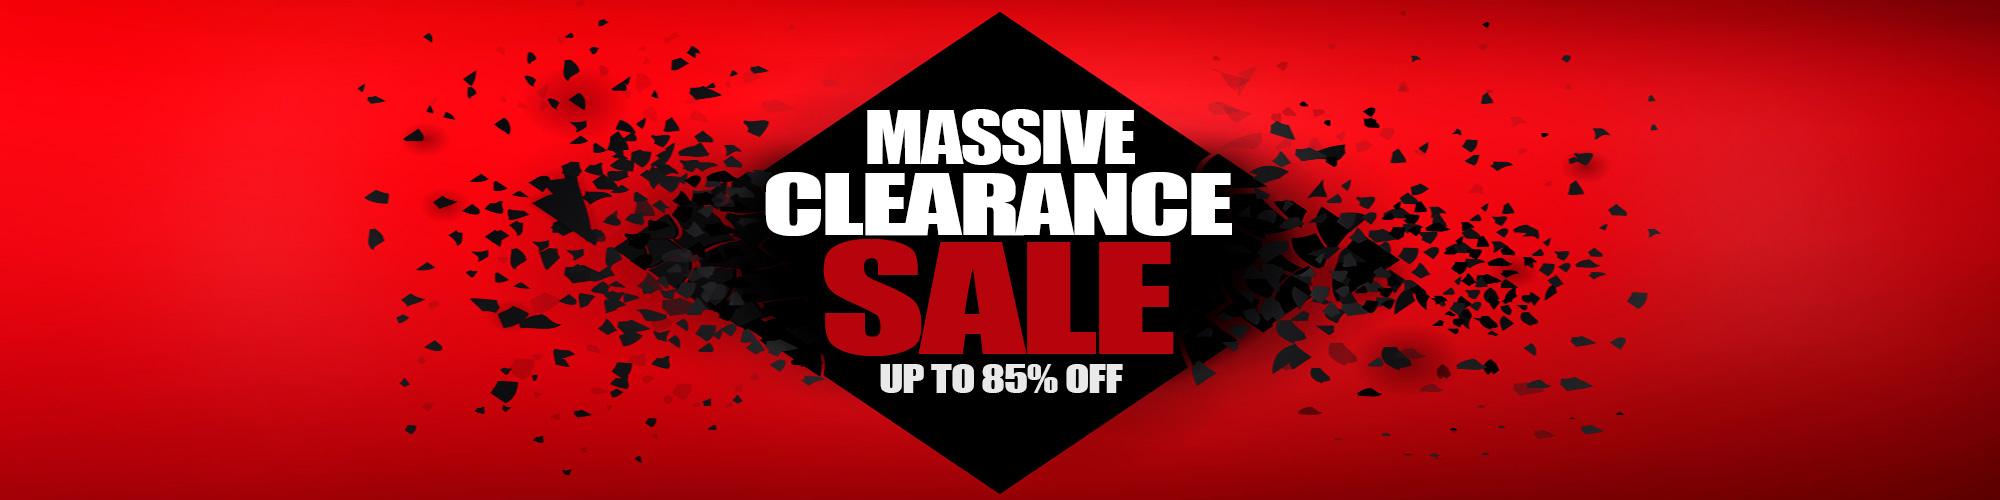 Massive Clearance SALE UP to 85% OFF!